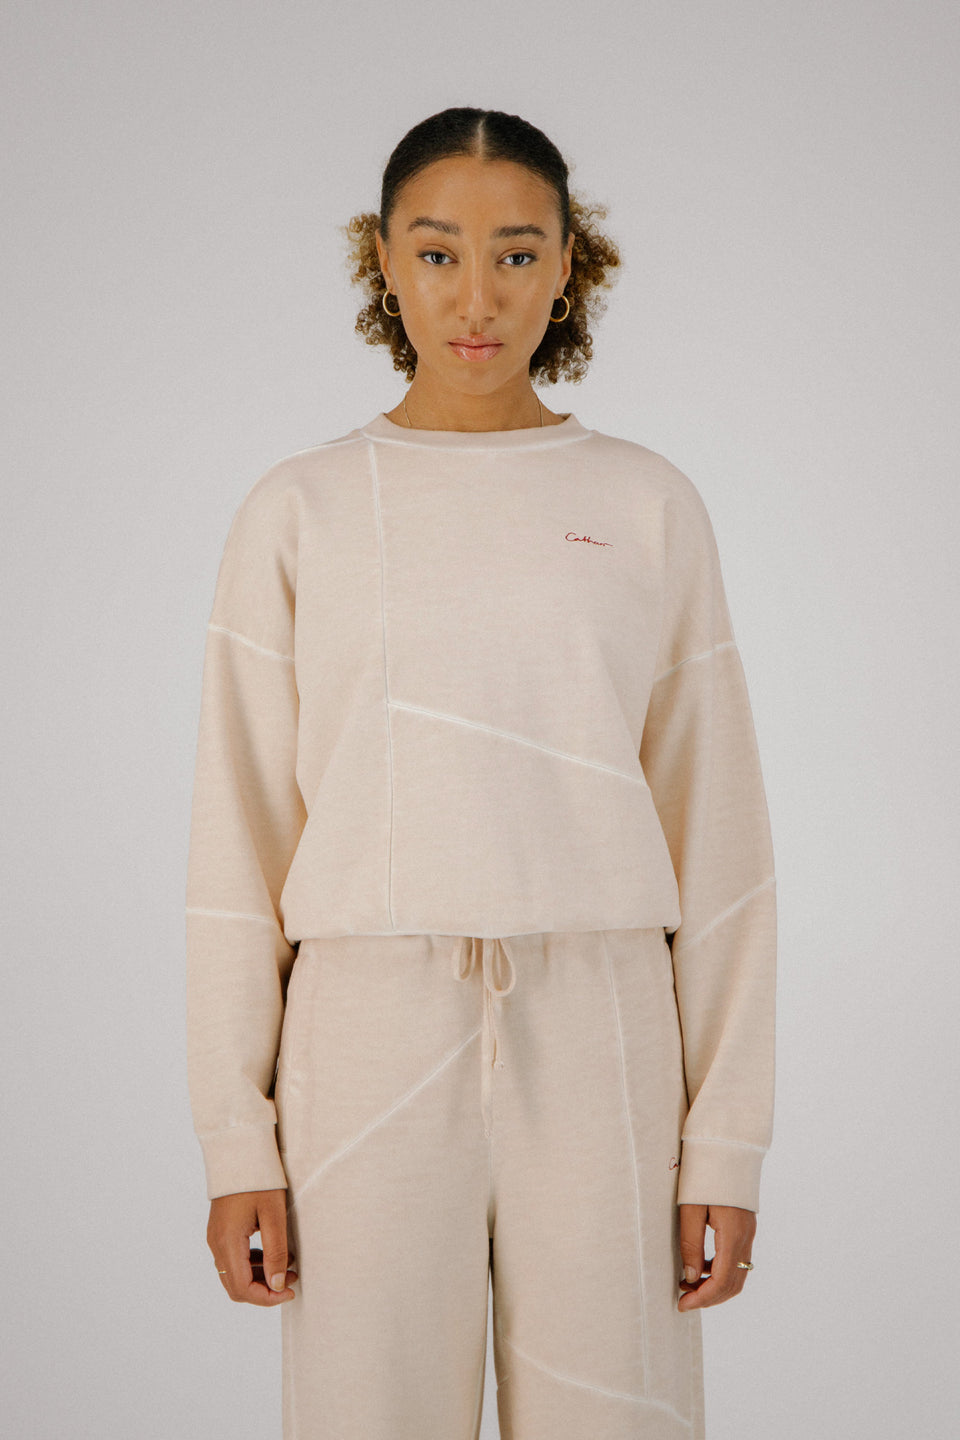 Deconstructed Crewneck Pale Beige